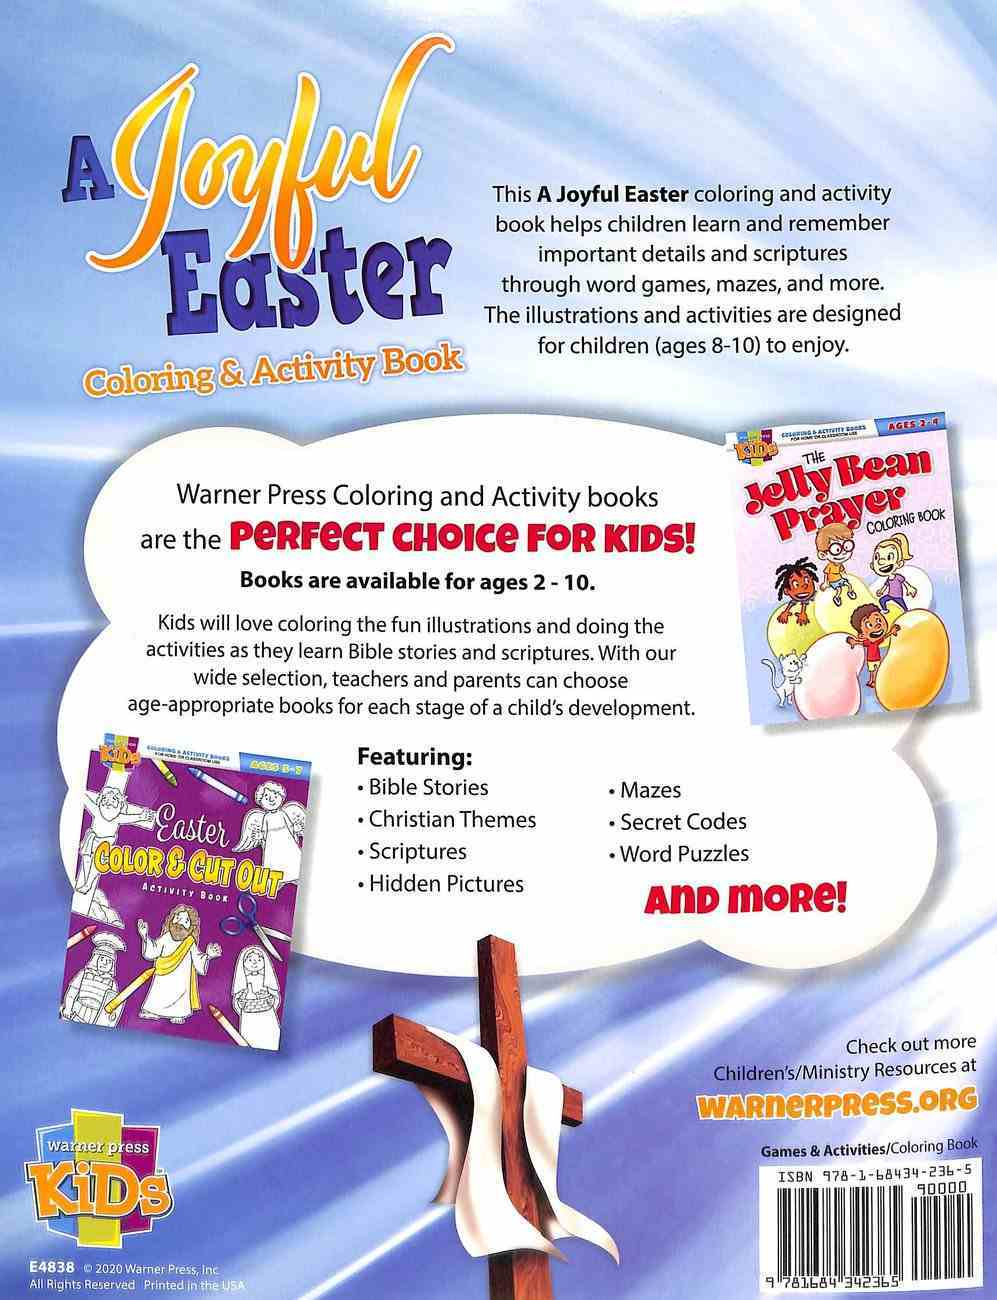 Joyful Easter, A: Coloring & Activity Book (Ages 8-10, NIV) (Warner Press Colouring & Activity Books Series) Paperback